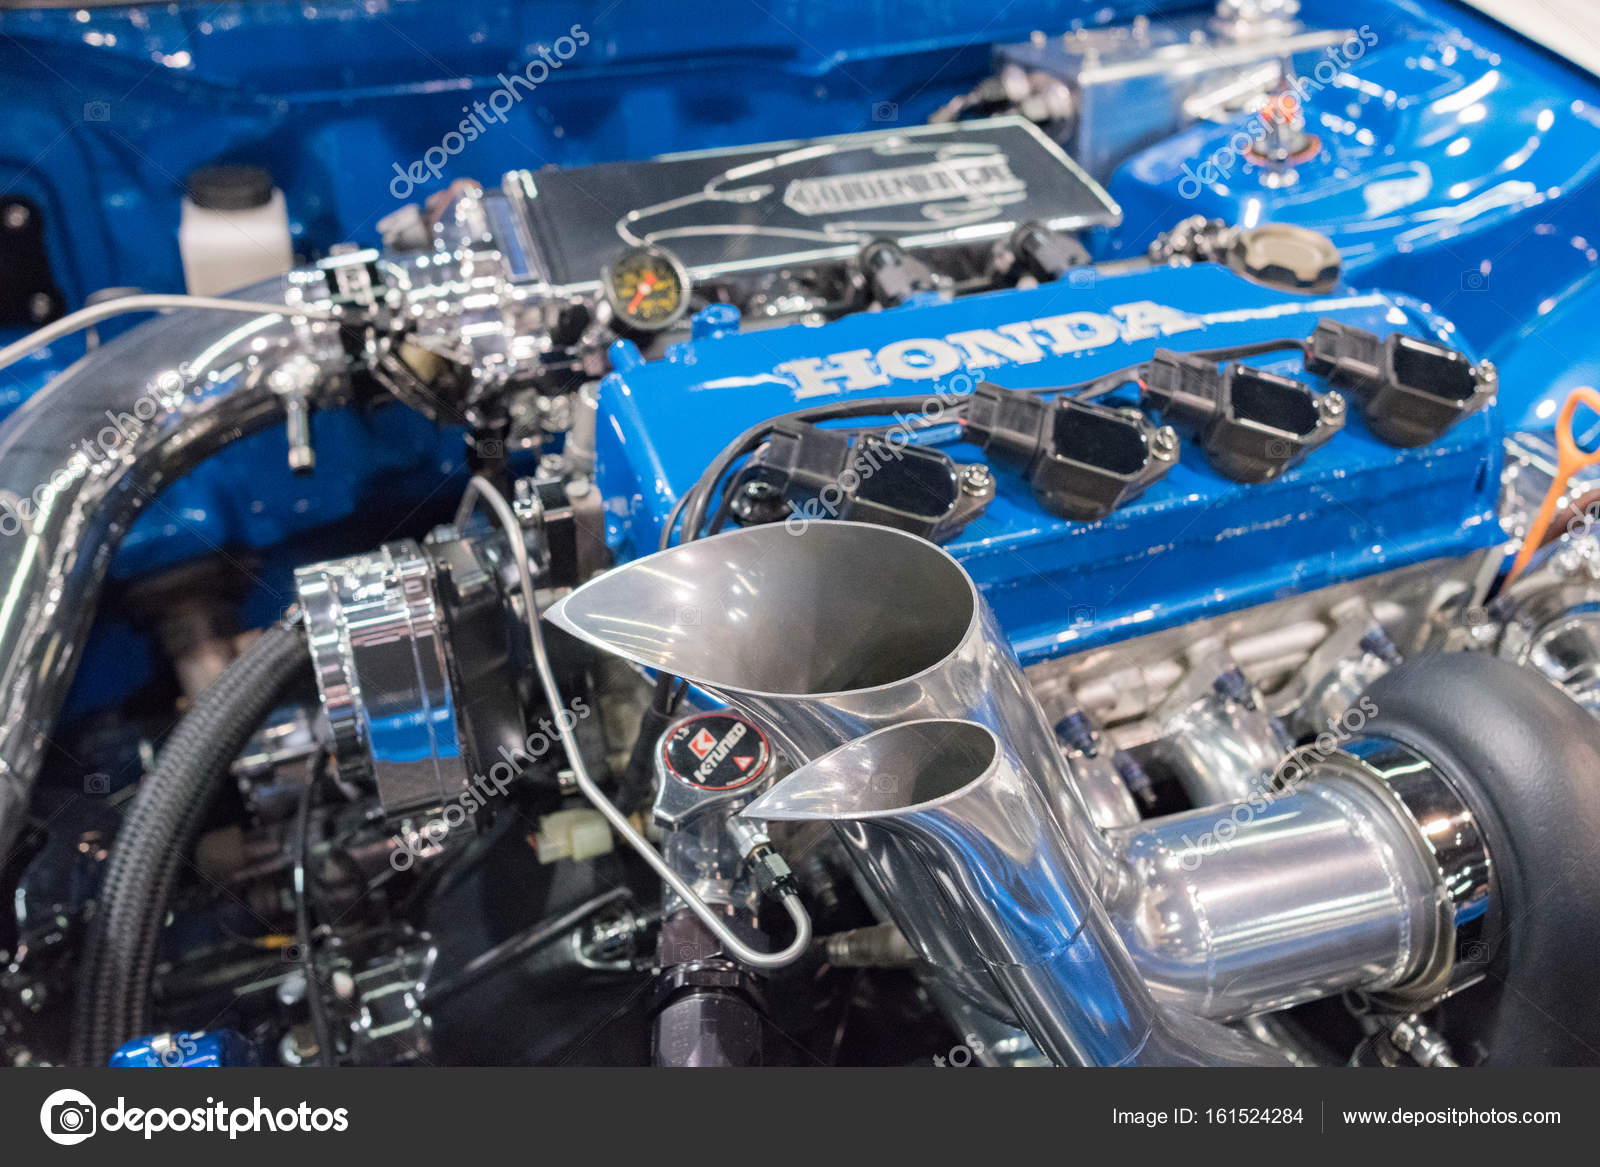 Honda Engine Display Wiring Diagrams Delta Faucet T14038 Parts List And Diagram Ereplacementpartscom On Stock Editorial Photo Bettorodrigues Rh Depositphotos Com Small Engines Car